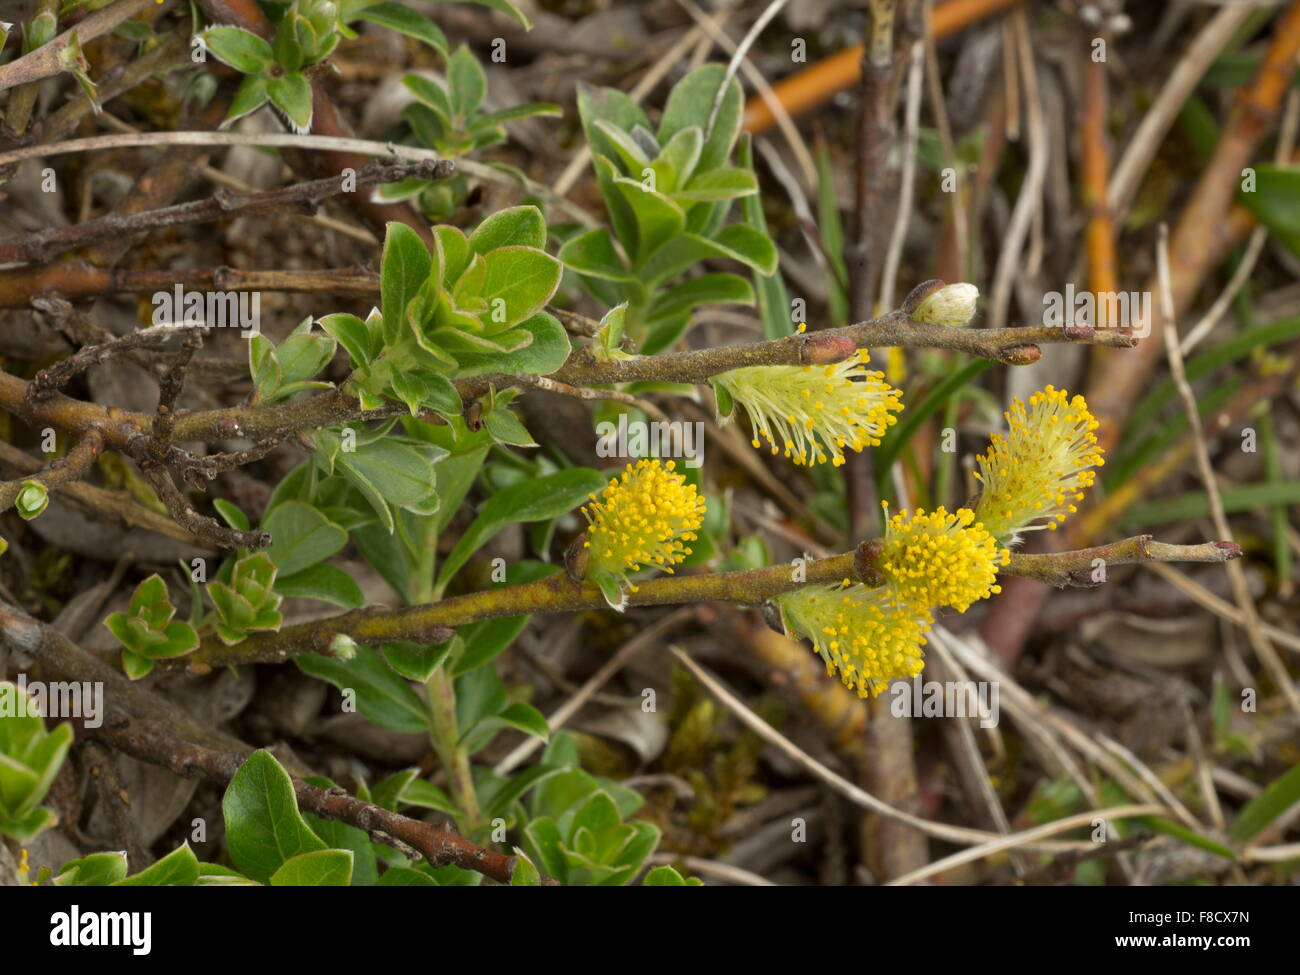 Creeping Willow, Salix repens in flower, in damp dune-slack. - Stock Image